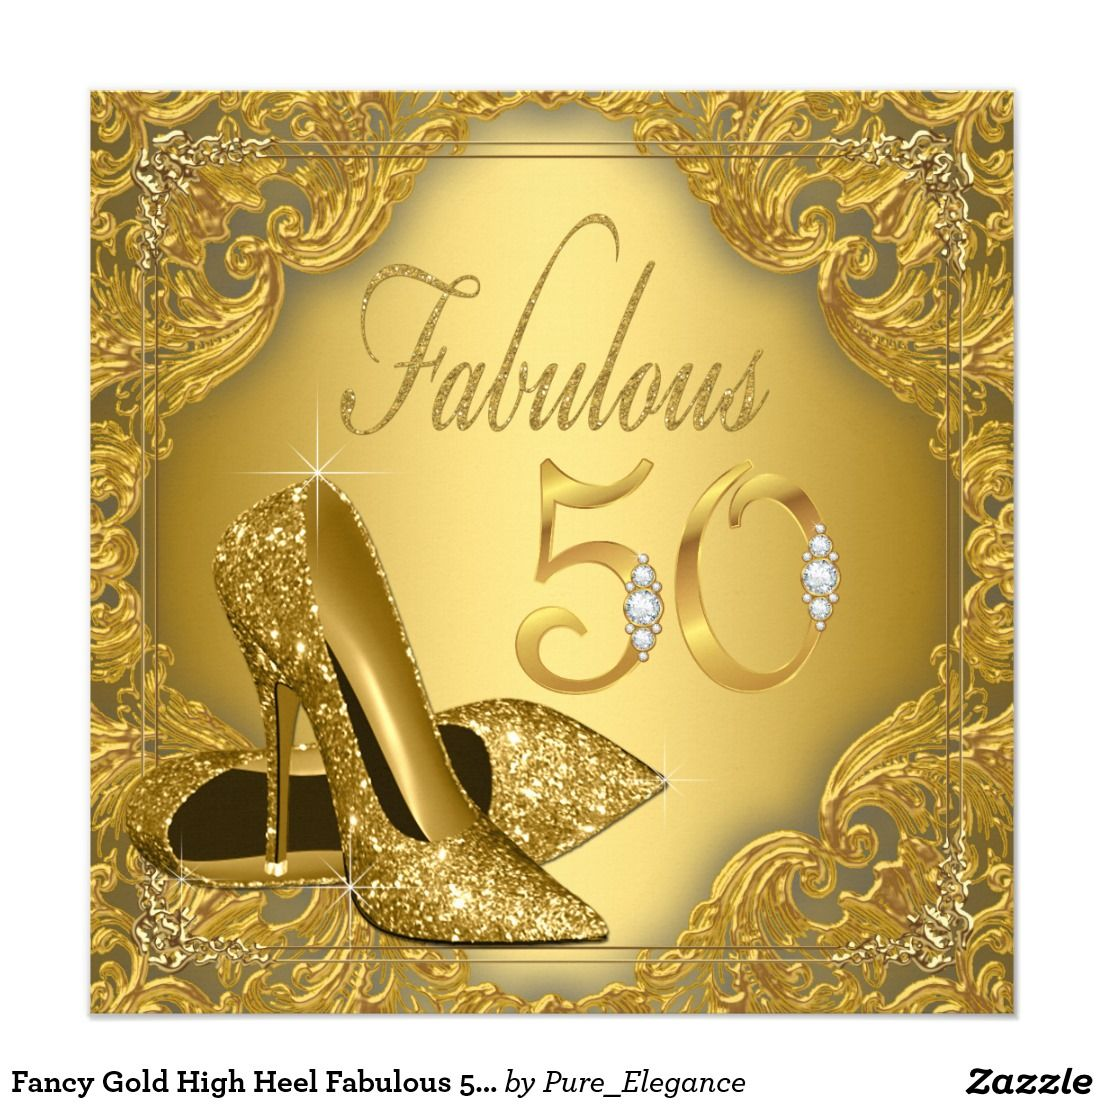 Fancy Gold High Heel Fabulous 50th Birthday Invitation 50th